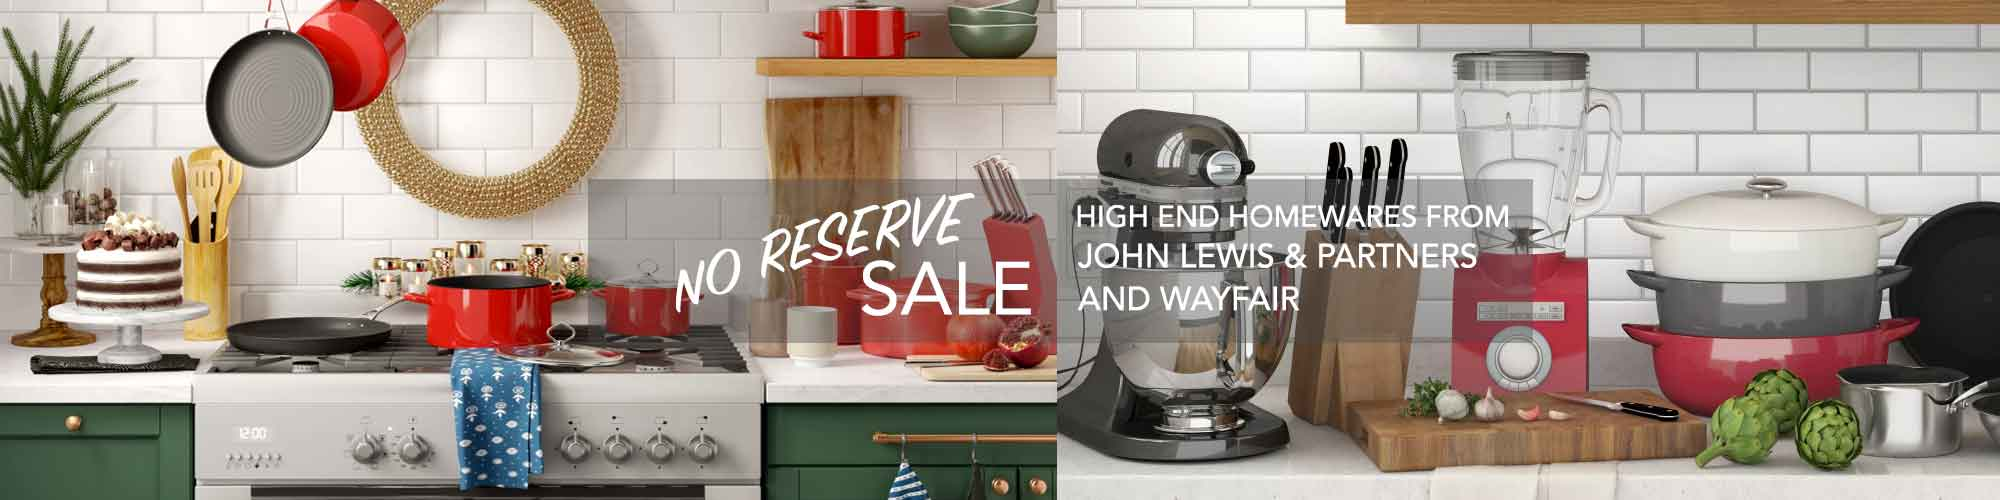 Thursday No Reserve Auction! Lots of Quality Homewares and Electronics!!!